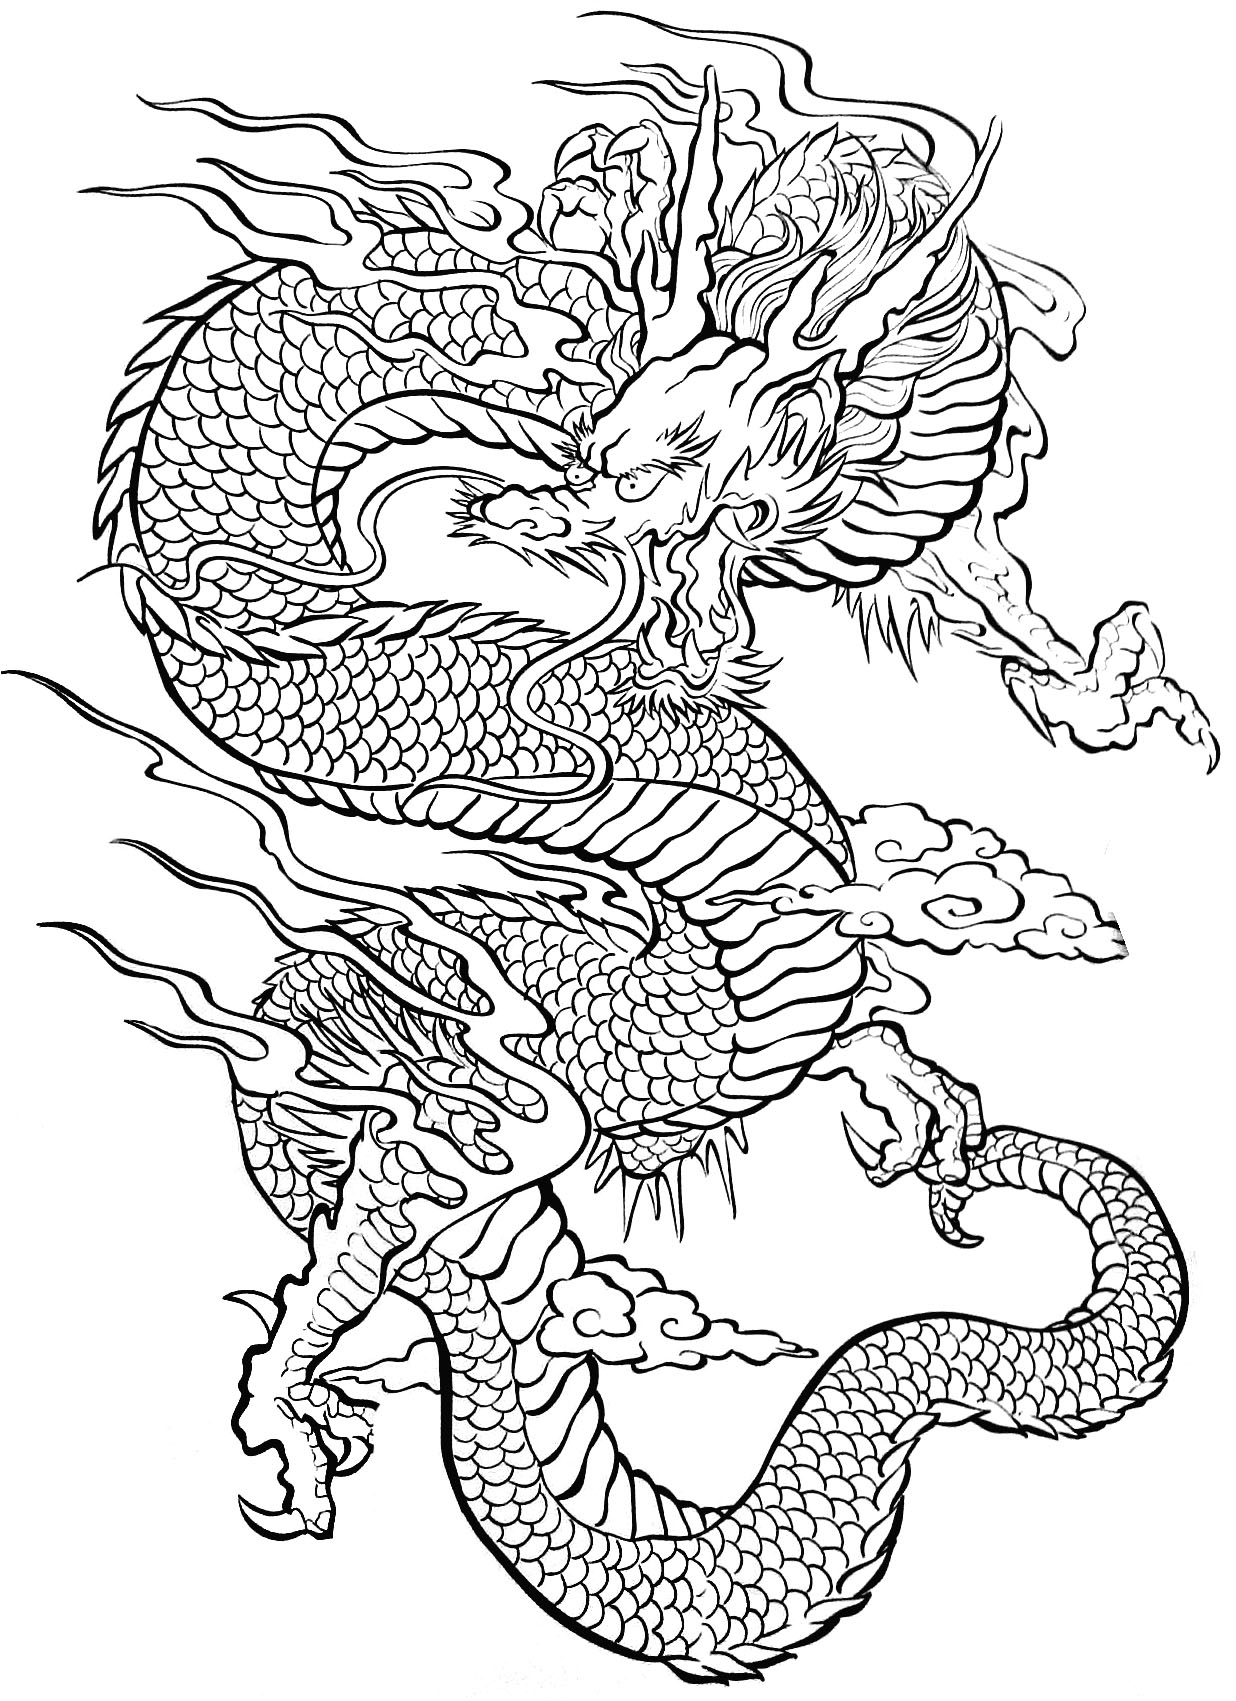 Tattoo dragon | Tattoos - Coloring pages for adults | JustColor